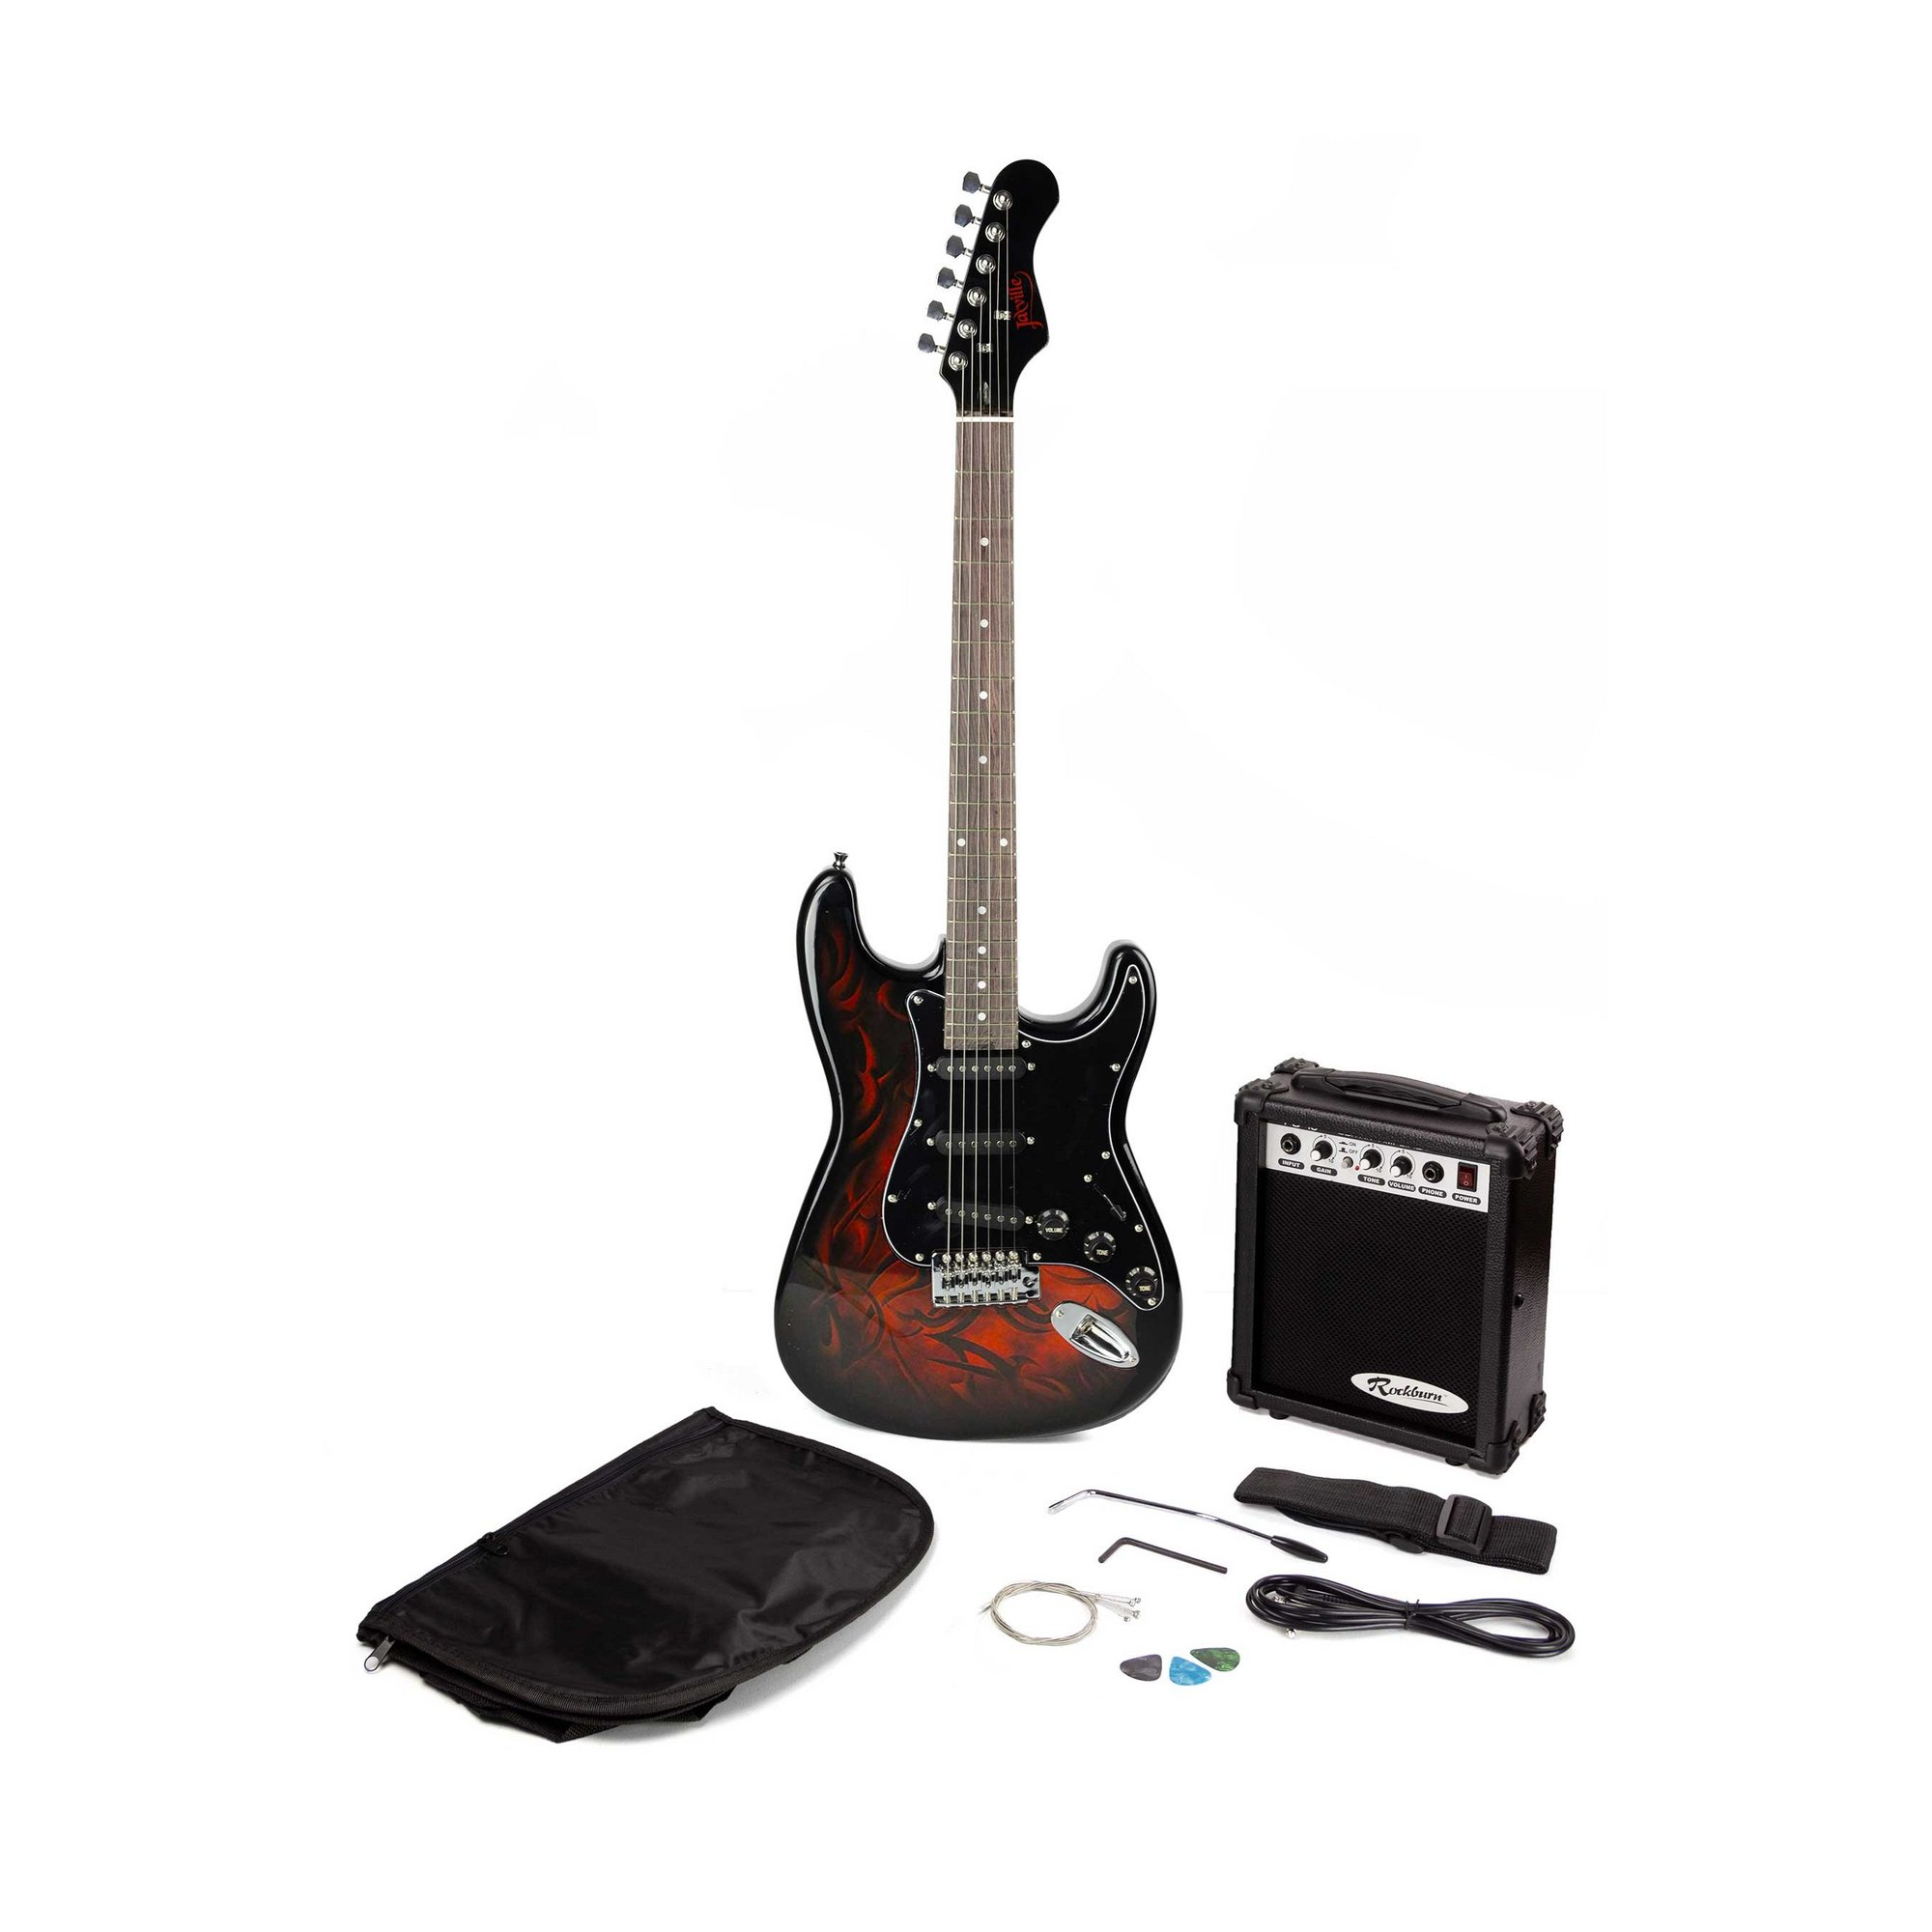 Image of Jaxville Demon St Style Electric Guitar